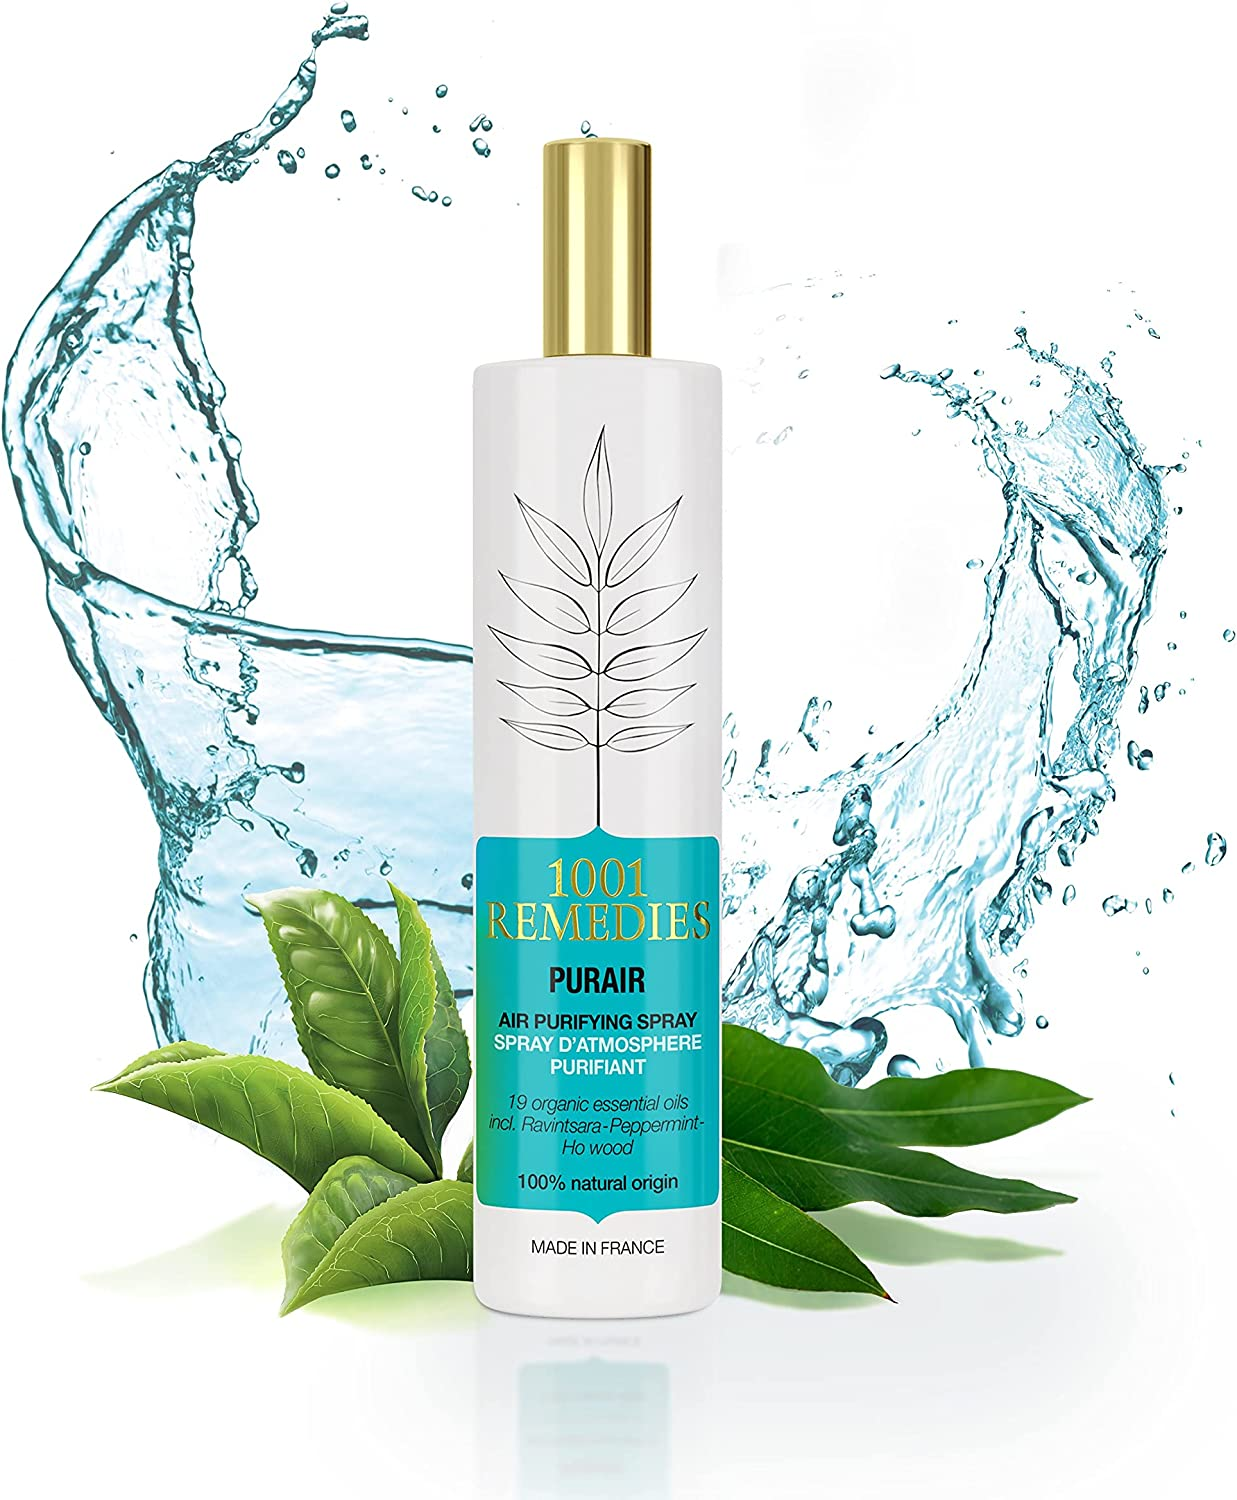 1001 Remedies Room Spray Air Freshener - 100% Natural Award Winning Pillow Mist, Purifying Fresh Room Deodorizer for Home with Eucalyptus & Lavender – for Bathroom, Linen Bedding, Made in France